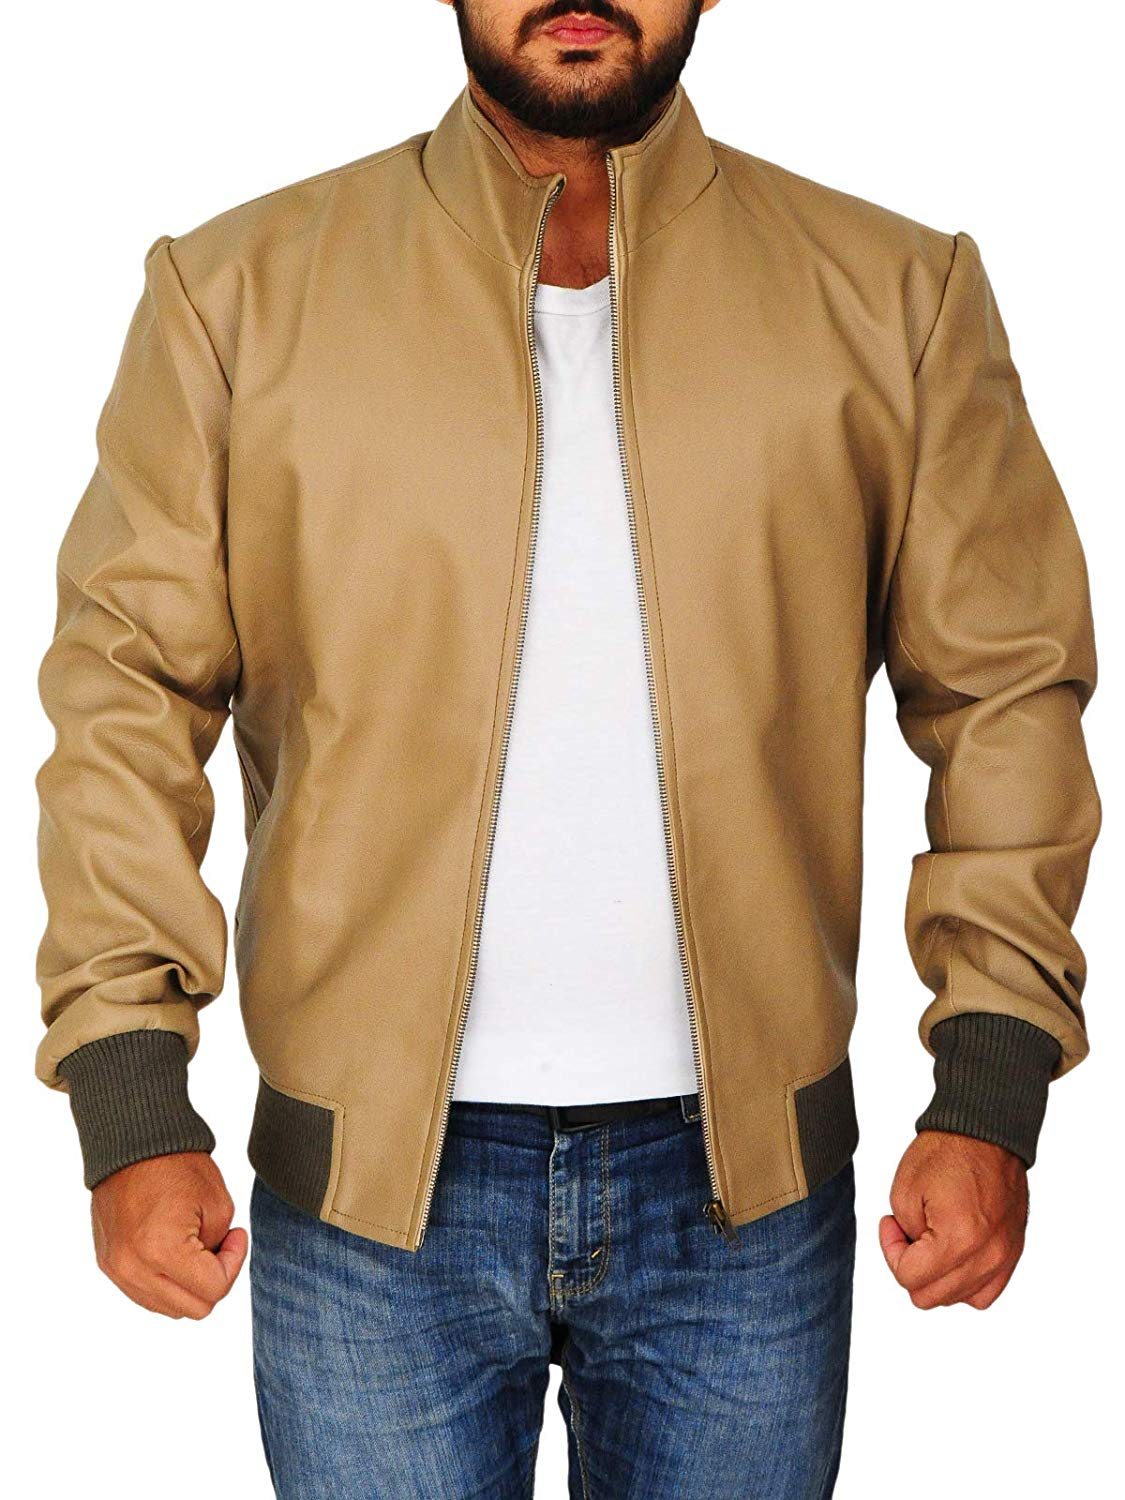 Men's Slim Fit Faux Leather Jacket Stand Up Collar Motorcycle Antique Beige Jacket - Large (Large) at Amazon Men's Clothing store: